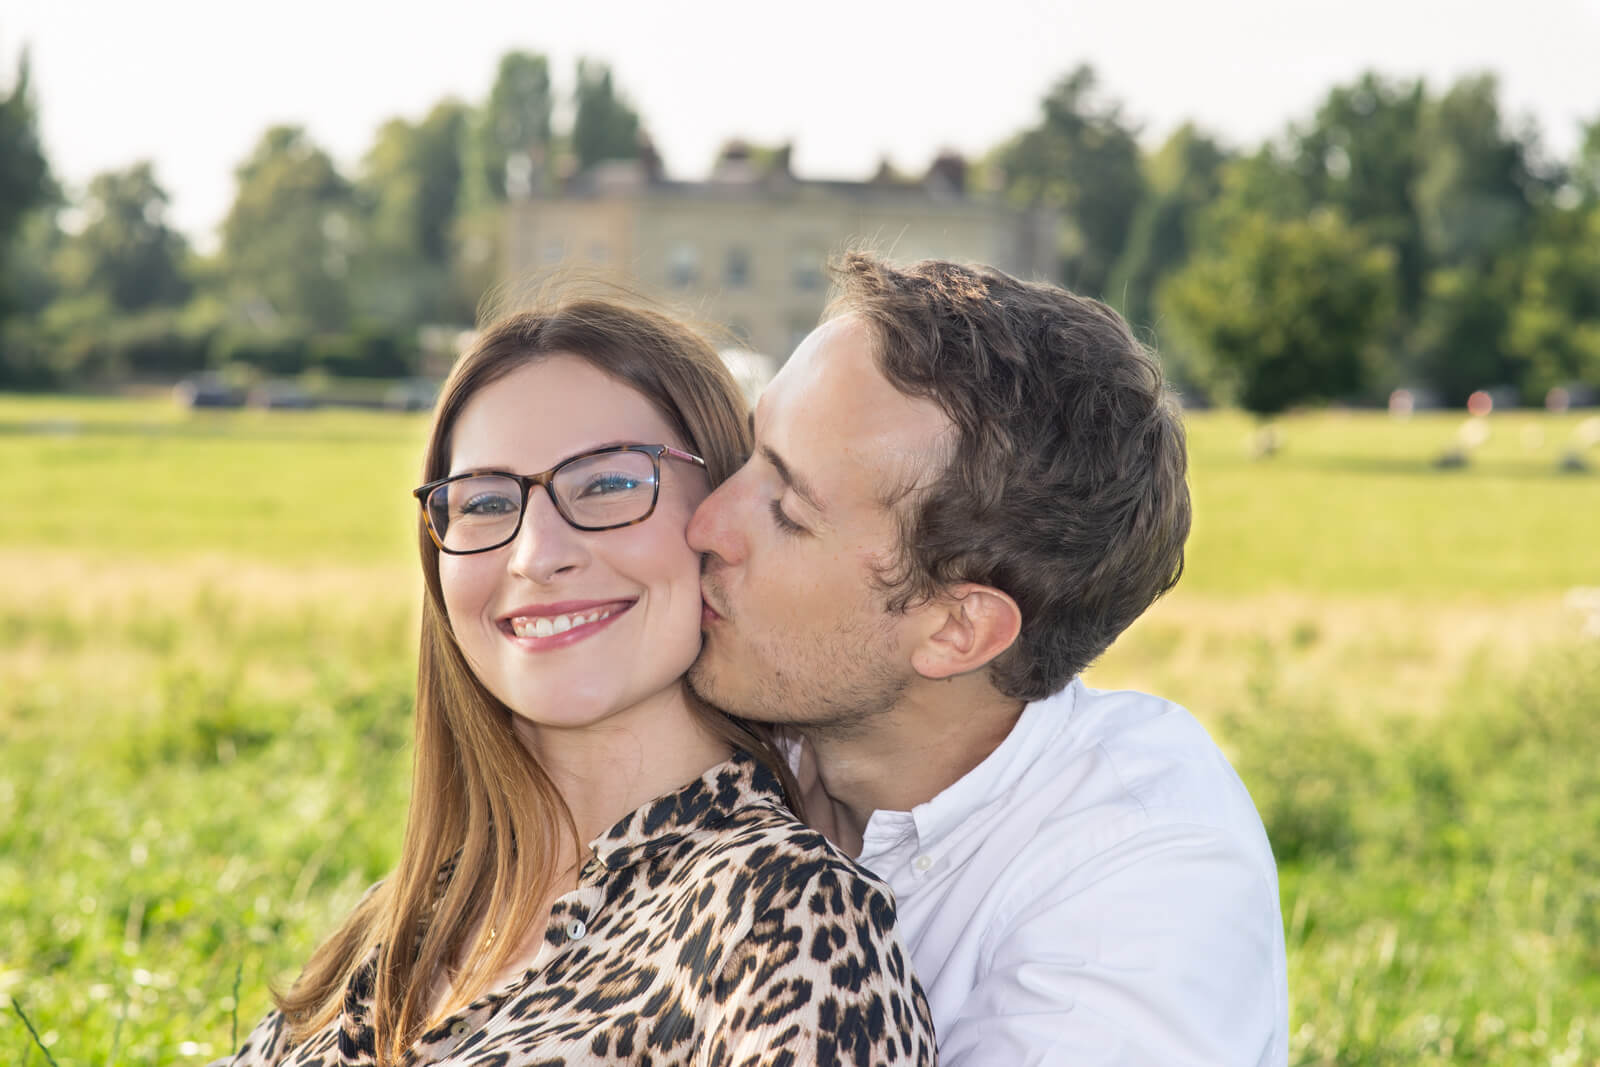 Man kisses his fiance on the cheek as she smiles at the camera